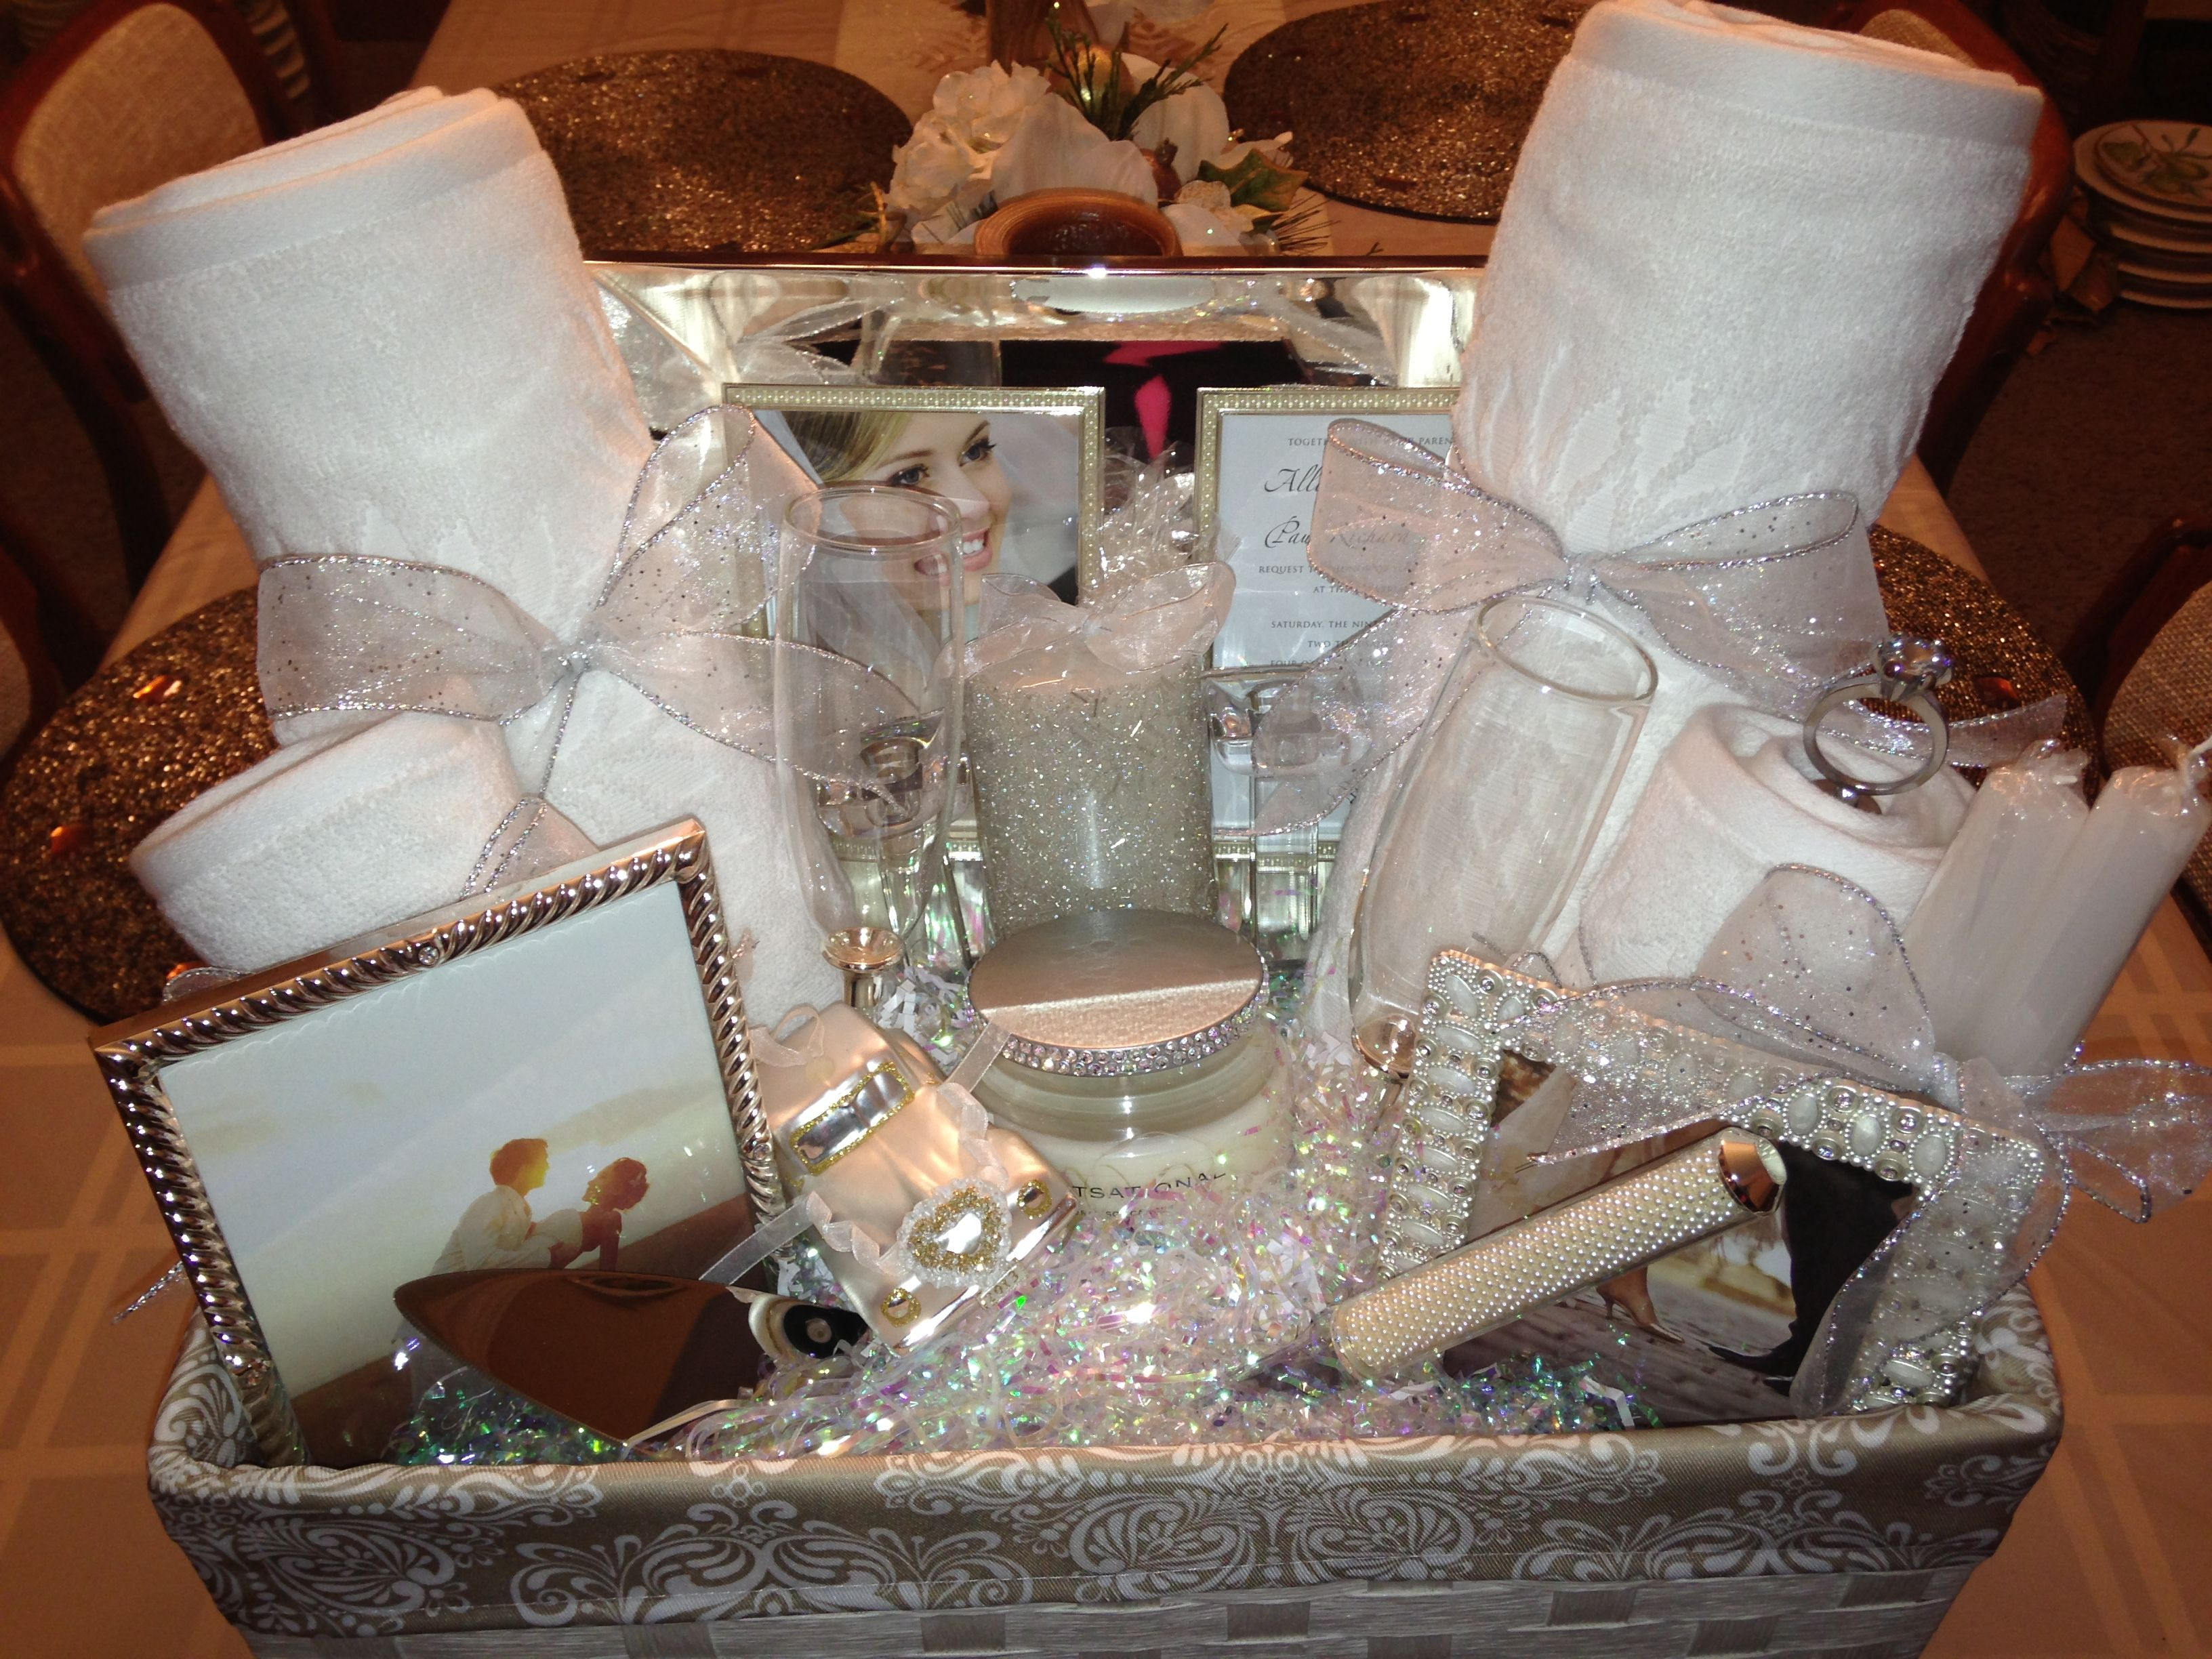 Bridal shower gift basket ideas. Ideasthatsparkle.com on how to do ...